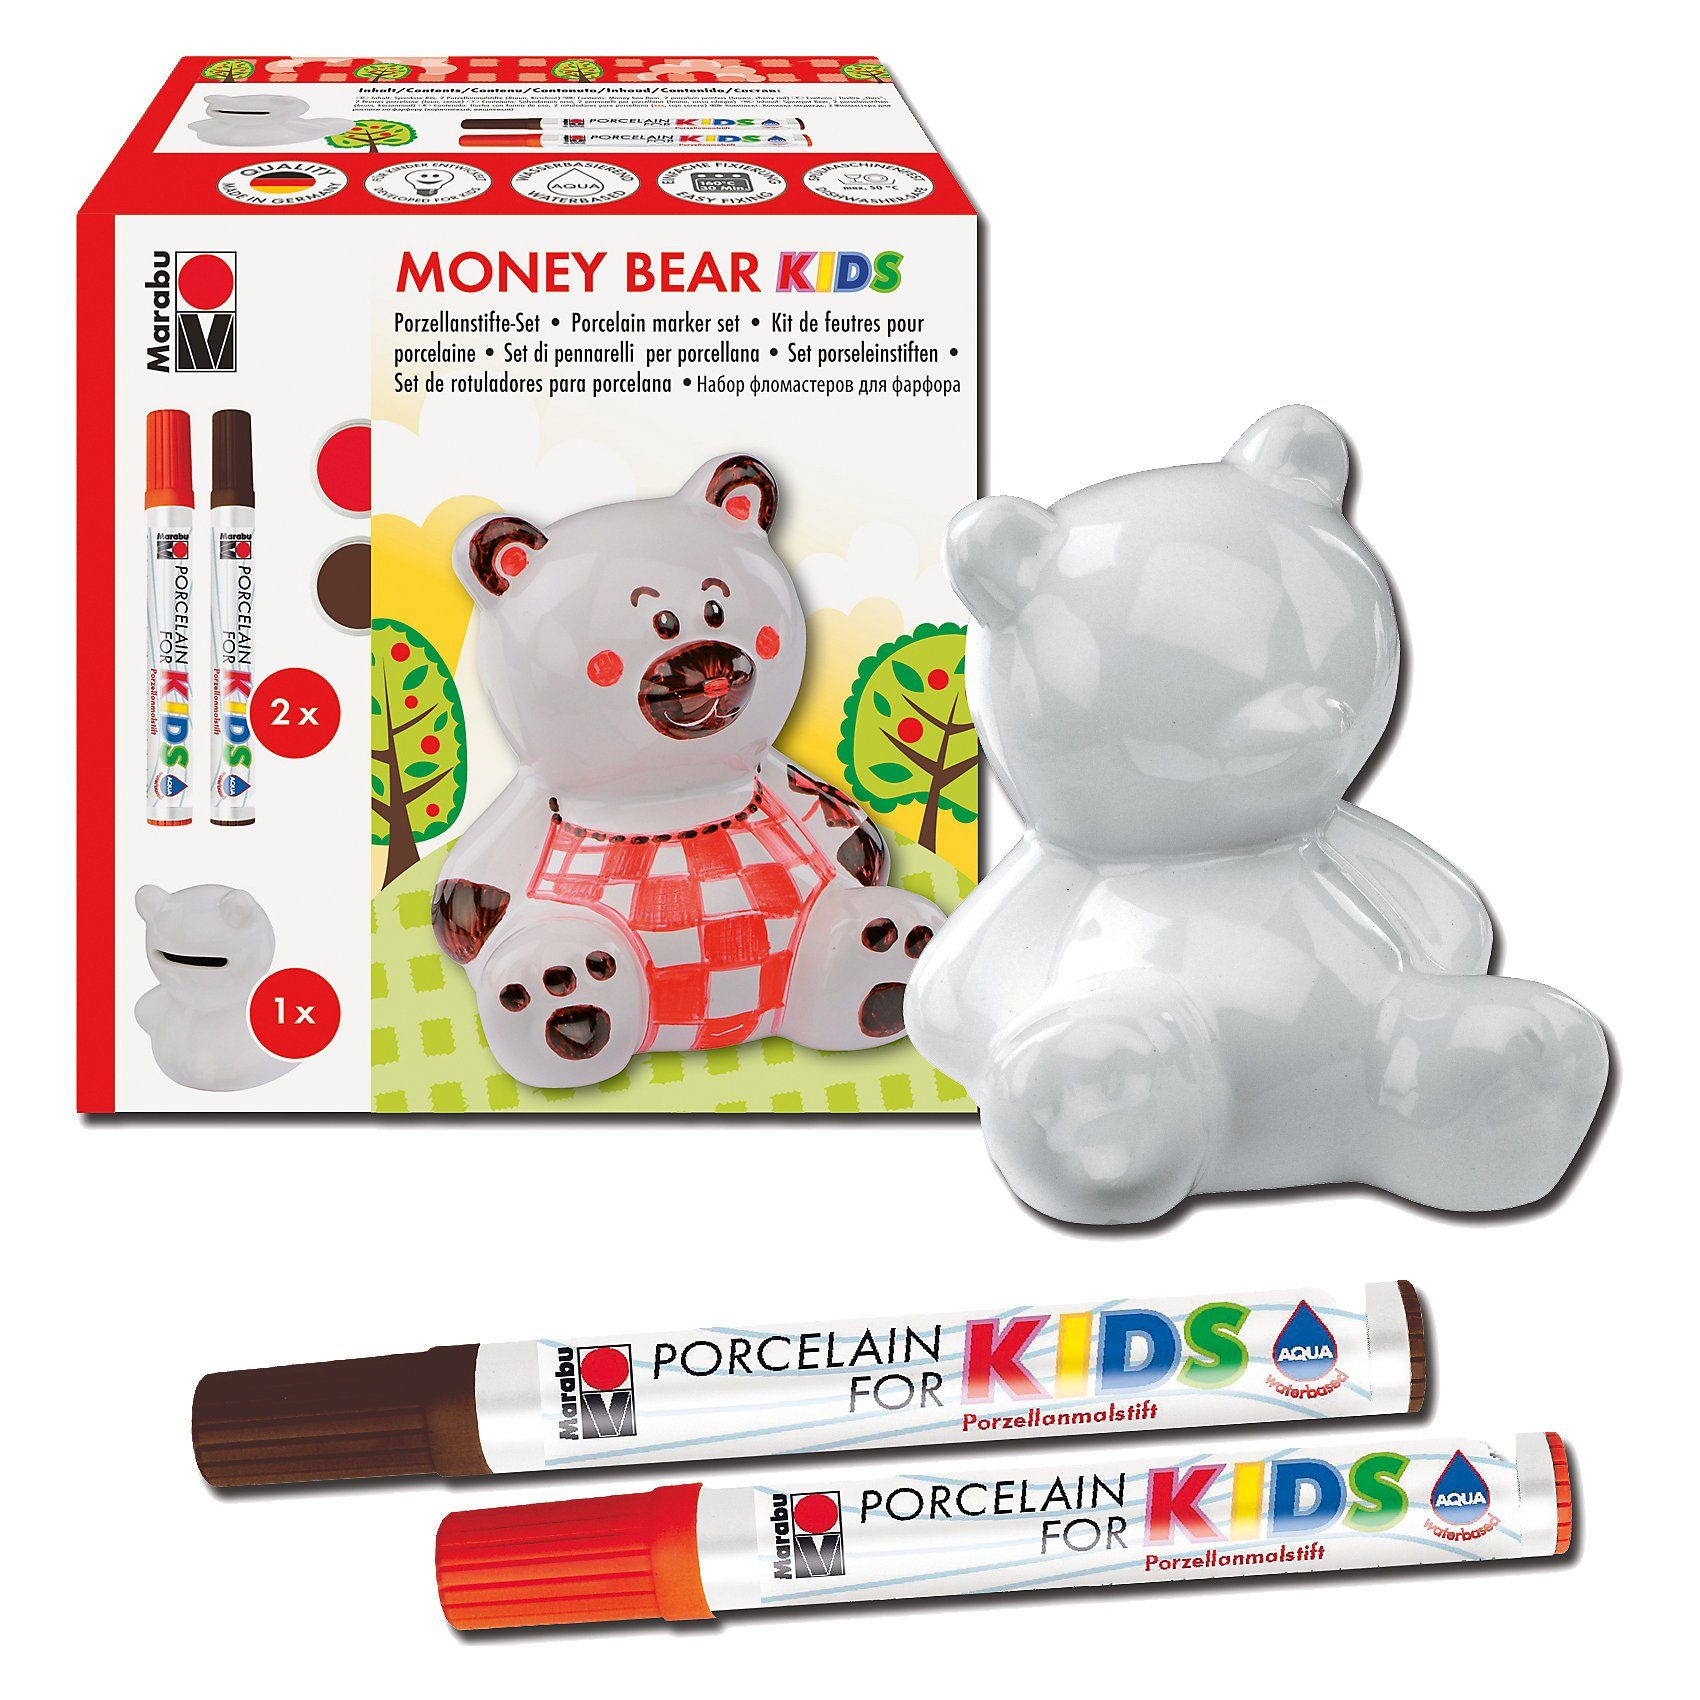 Marabu KIDS Porzellanfarbe Kreativset Spardose Money Bear